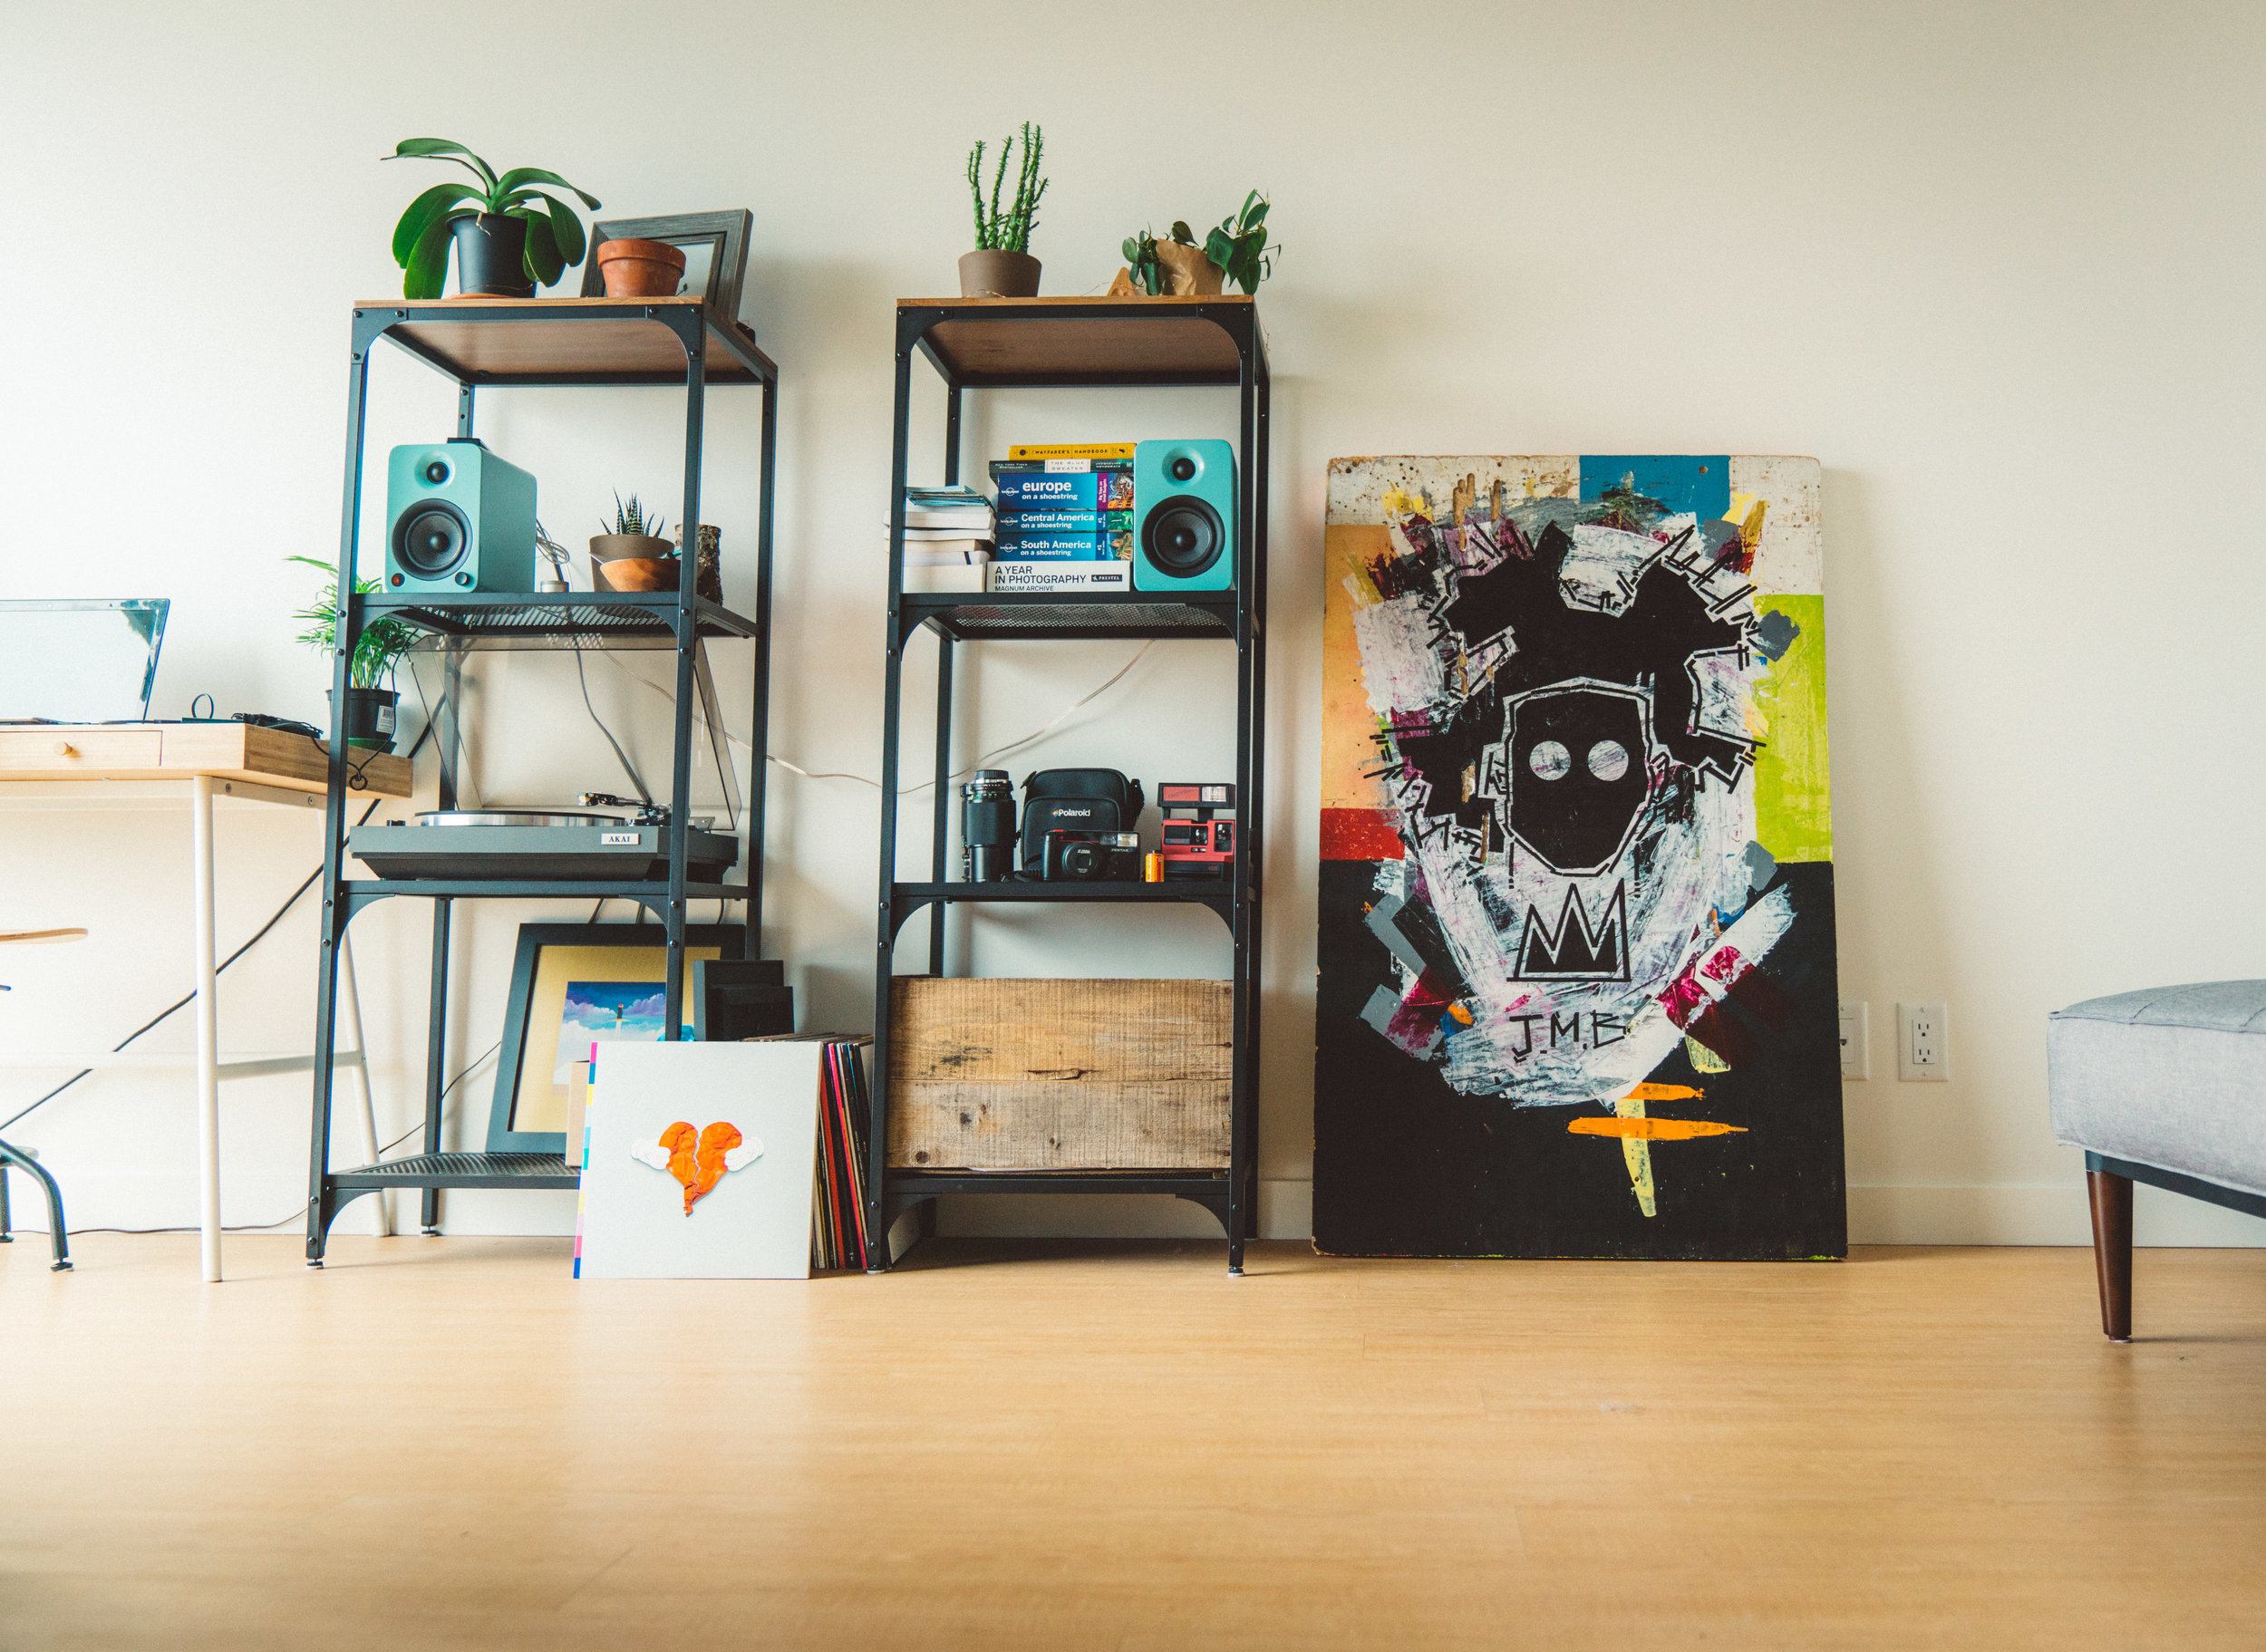 Here's the final product in my apartment. JMB = Jean-Michel Basquiat, one of my favourite artists and who's style Niko's sometimes reminds me of.